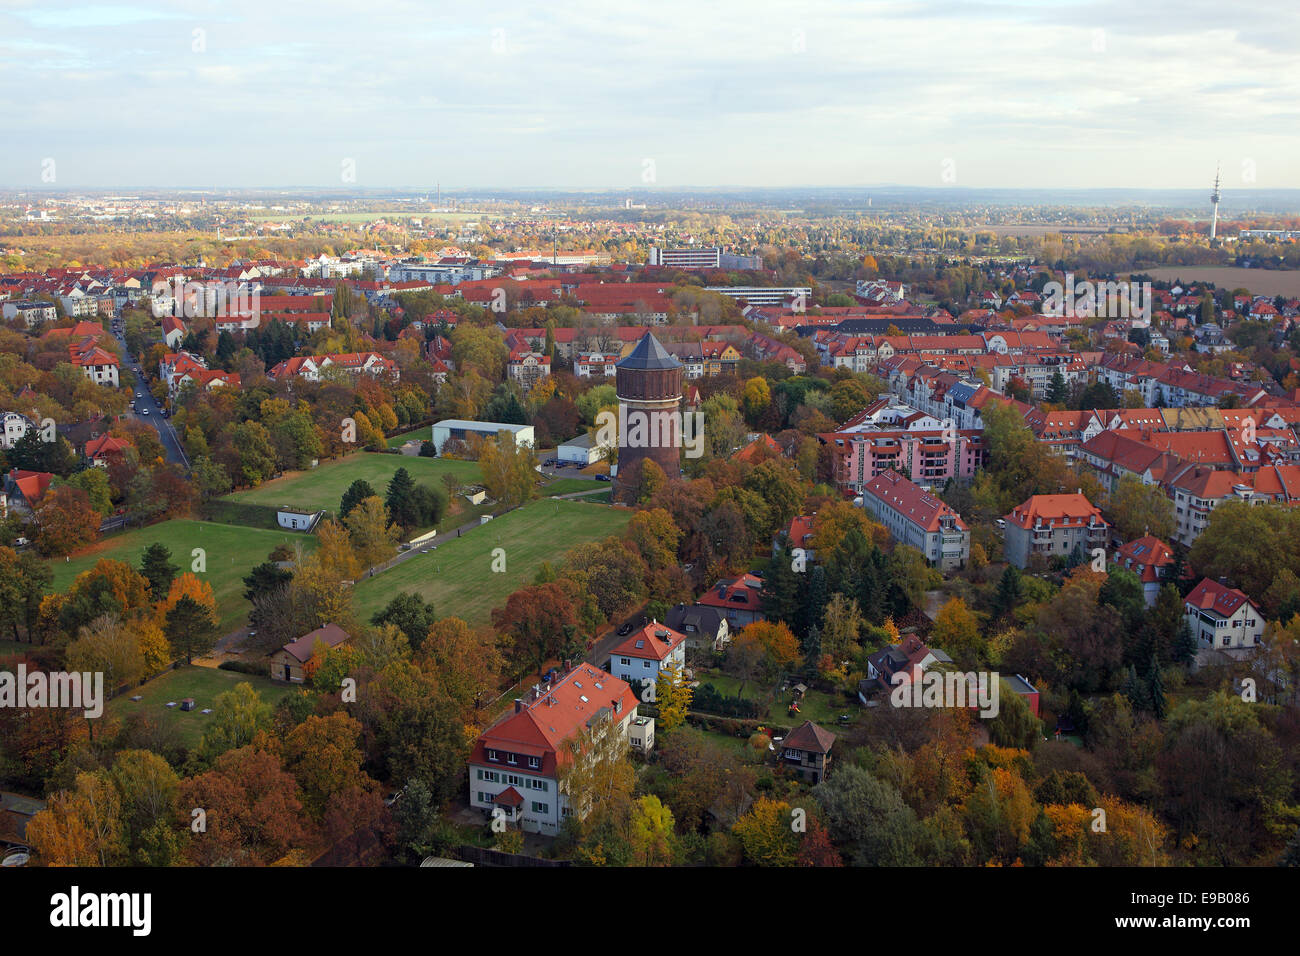 View of the city of Leipzig and its surroundings from the Monument to the Battle of the Nations in autumn, Leipzig, - Stock Image